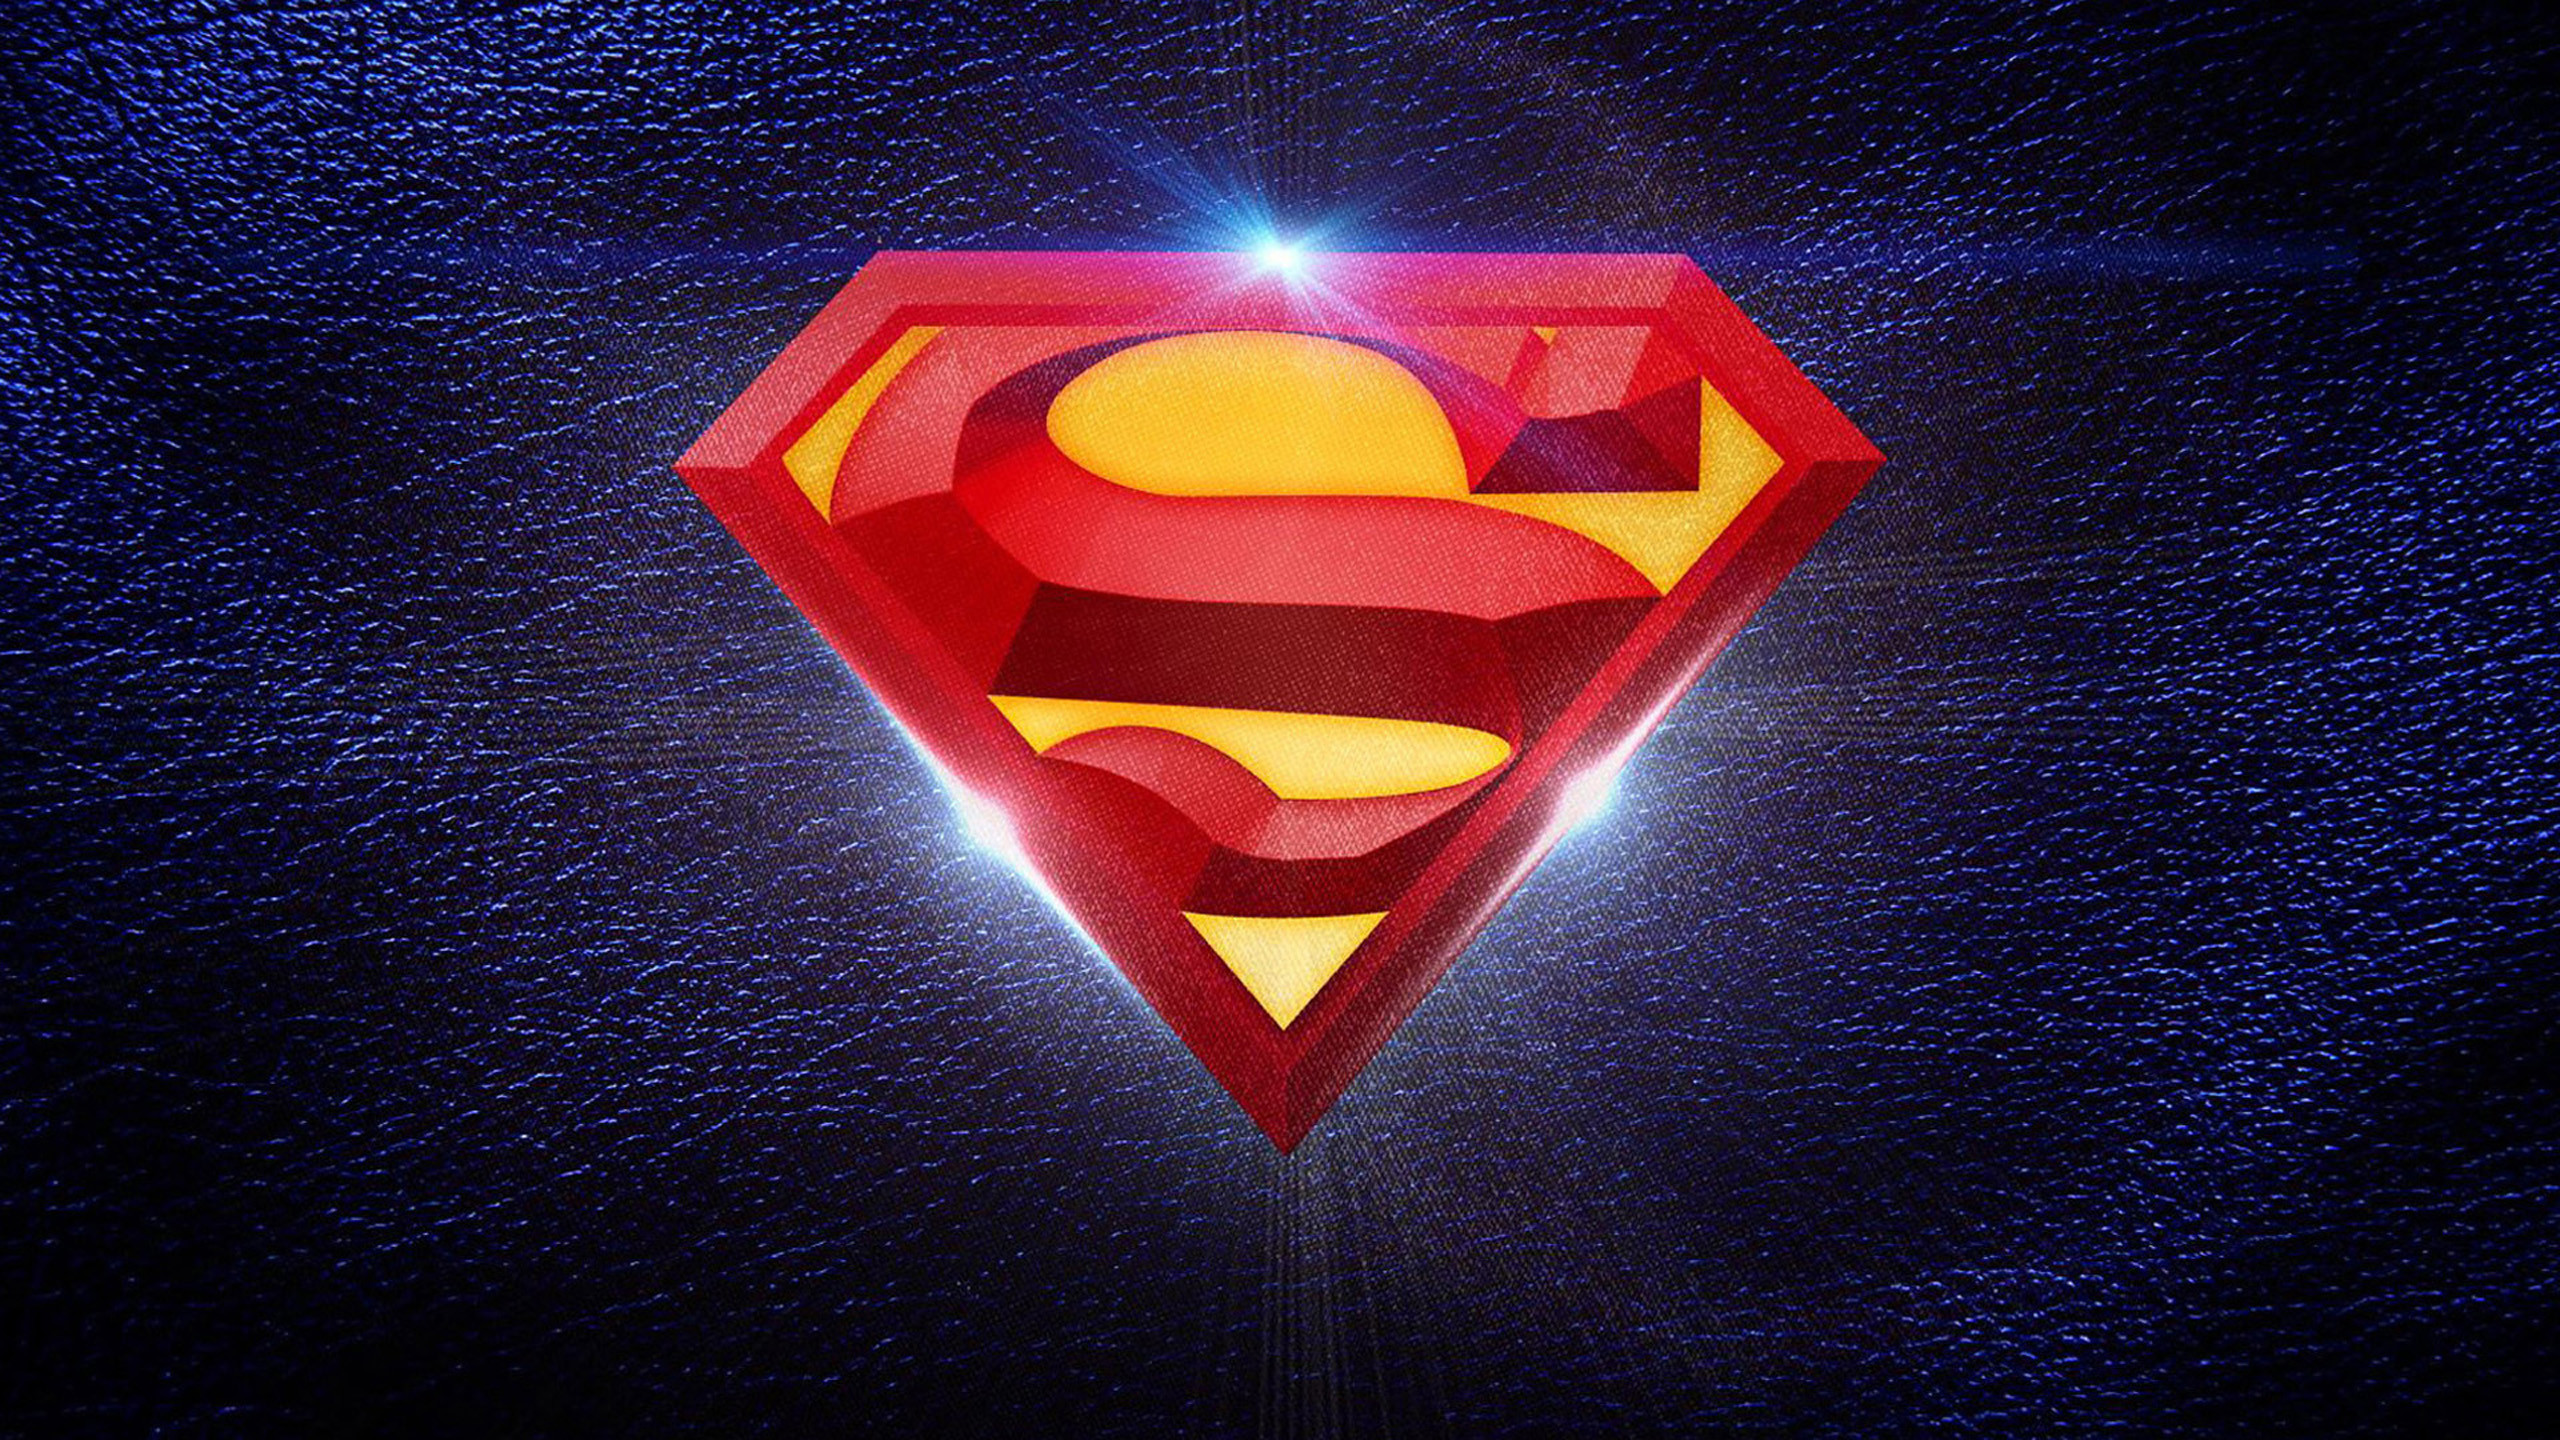 1080x1920 Abstract Funny Superman Logo IPhone 6 Wallpaper